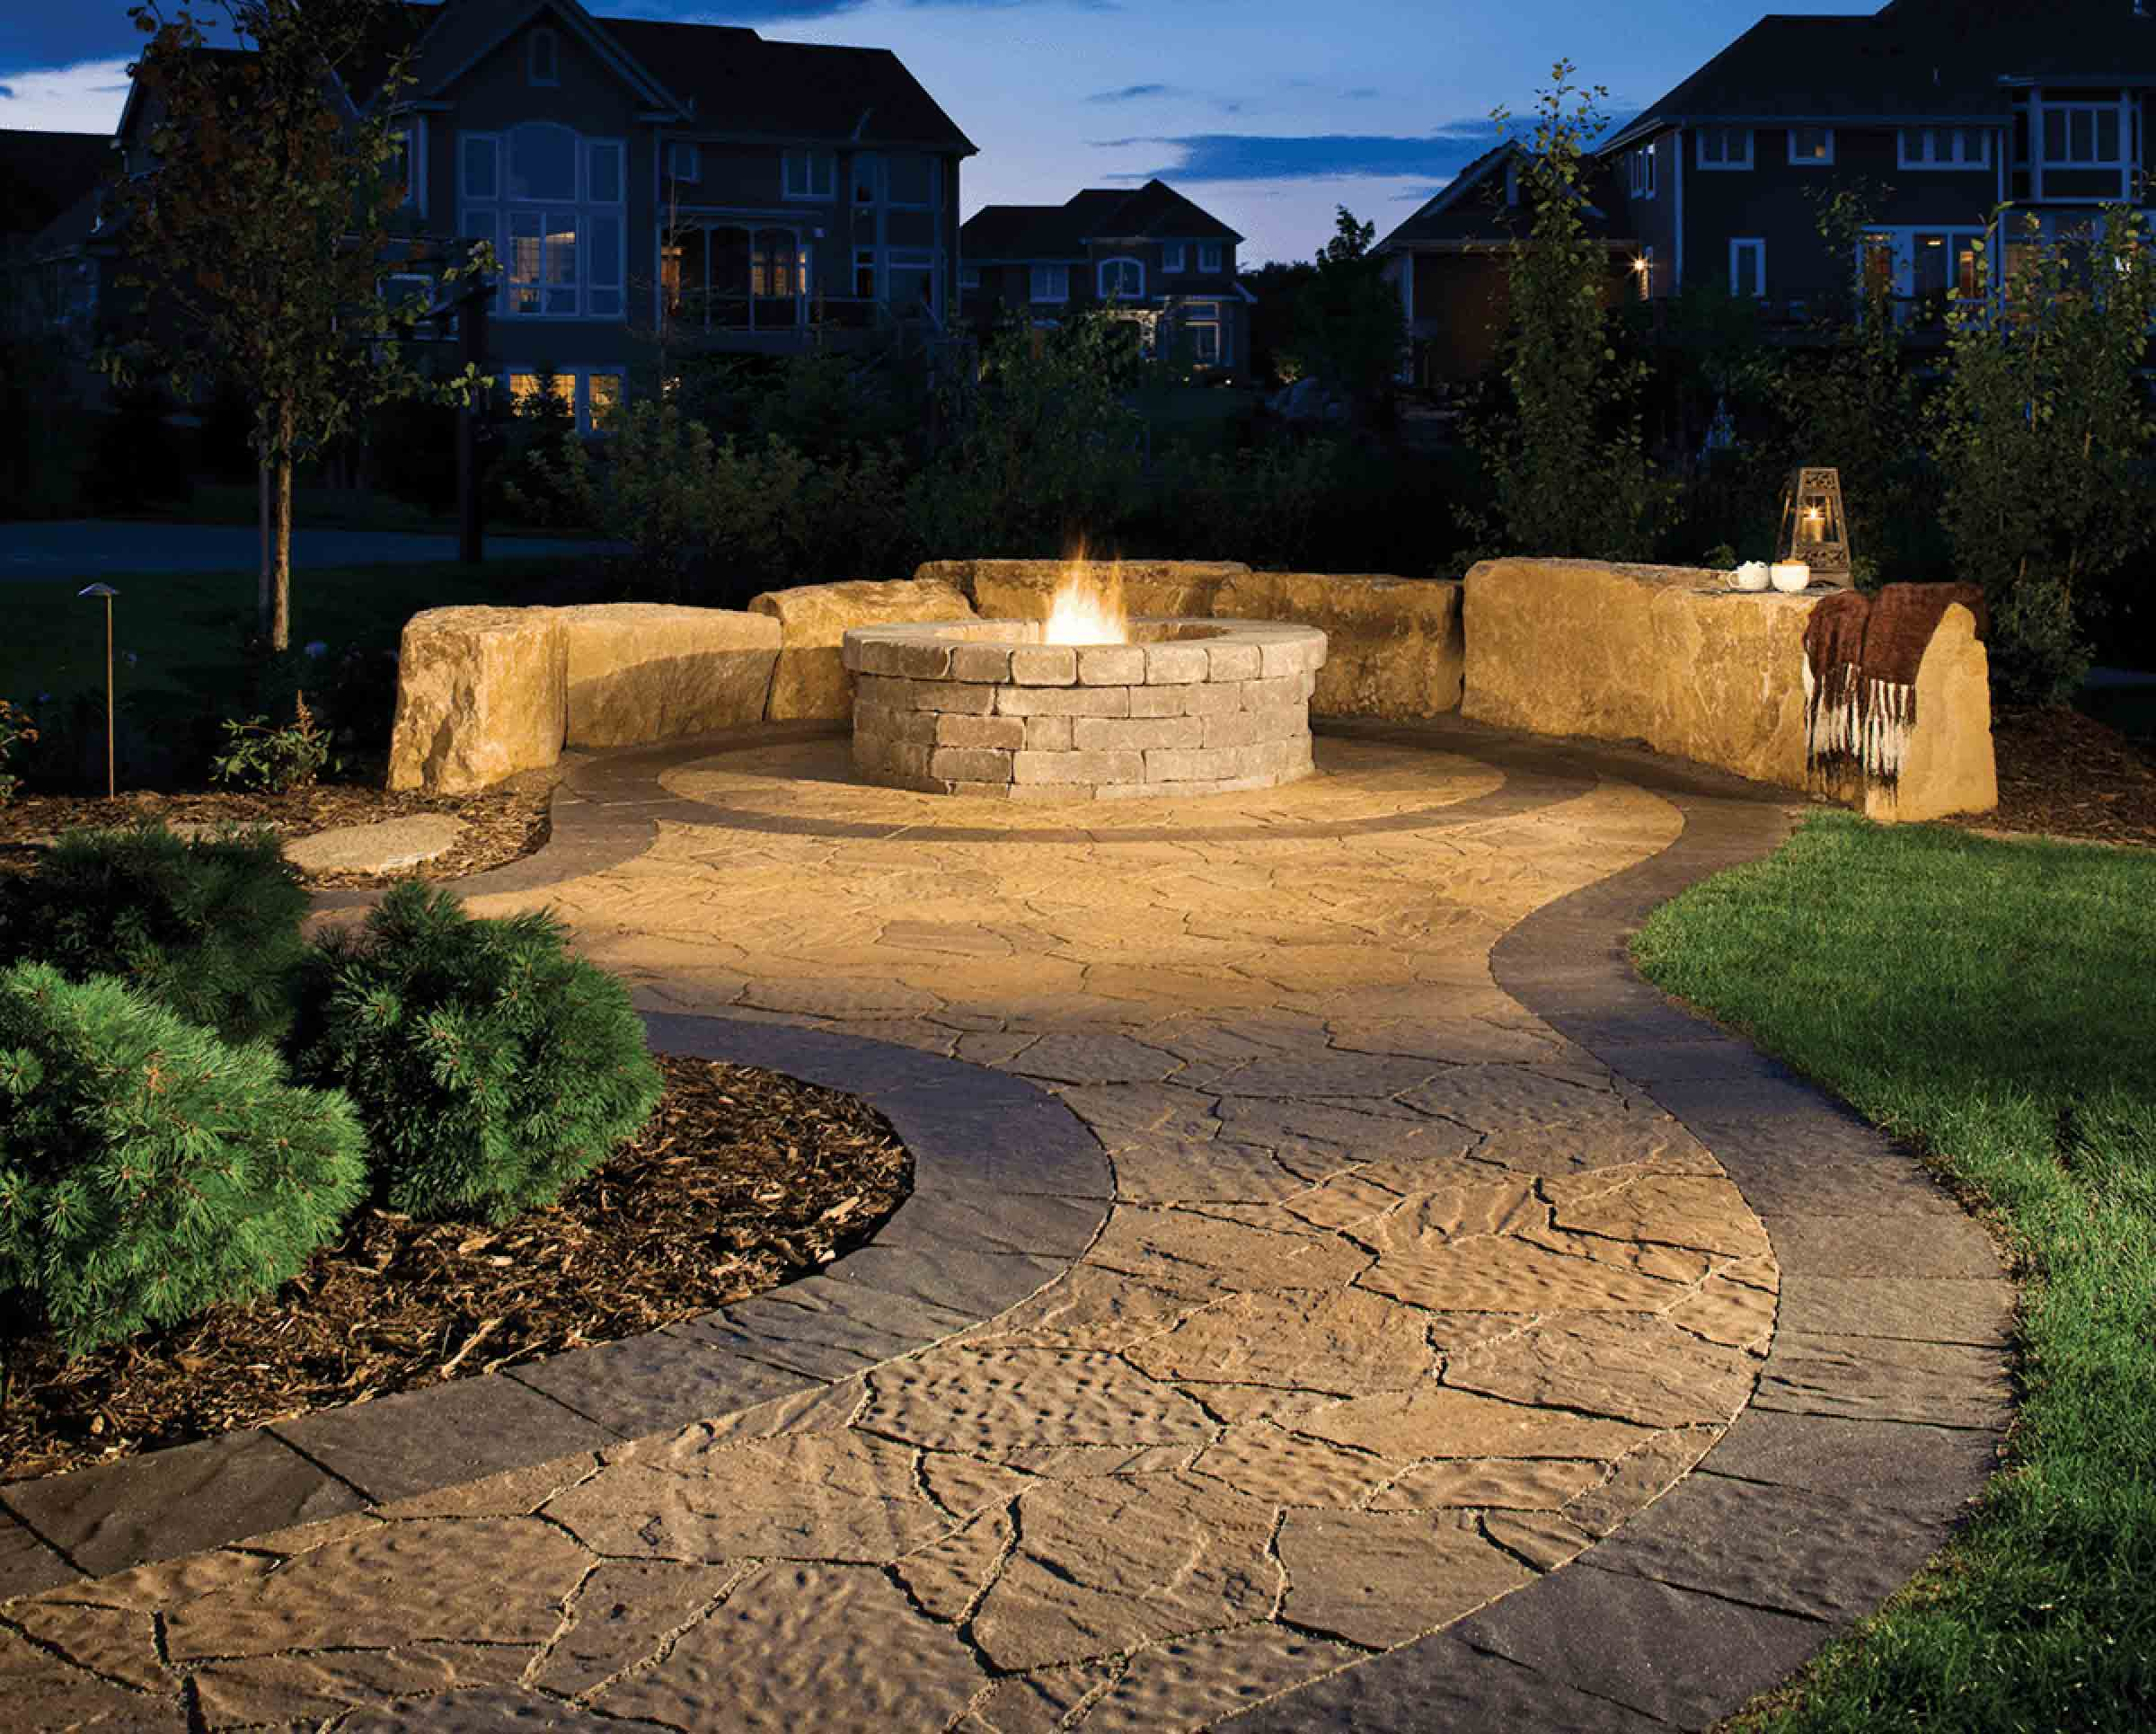 Aesthetic Paver Stone Why Pavers - Stone Pavers used to create a path leading up to a stone paver